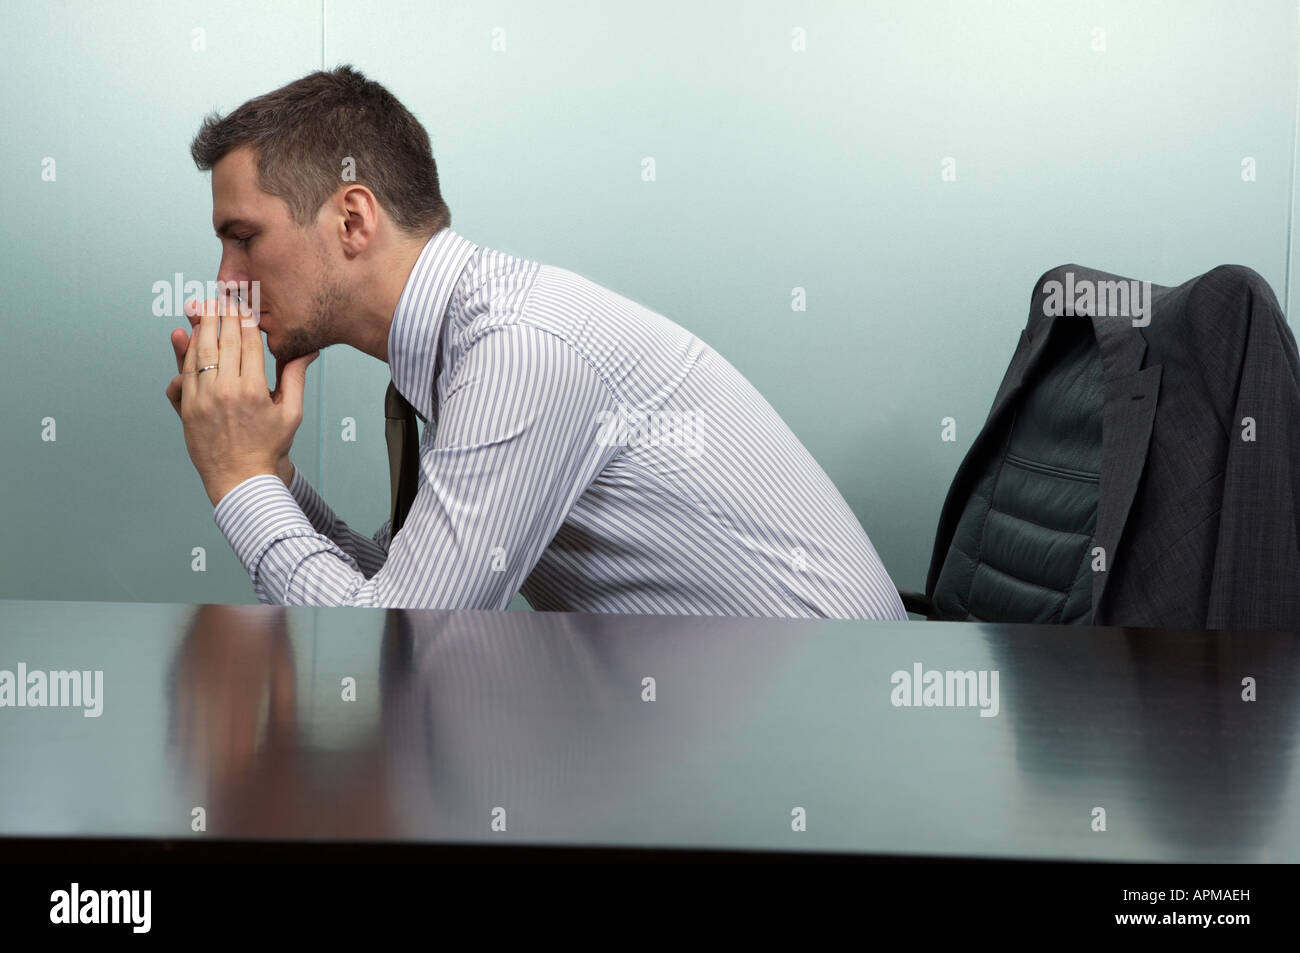 Upset man in his office - Stock Image